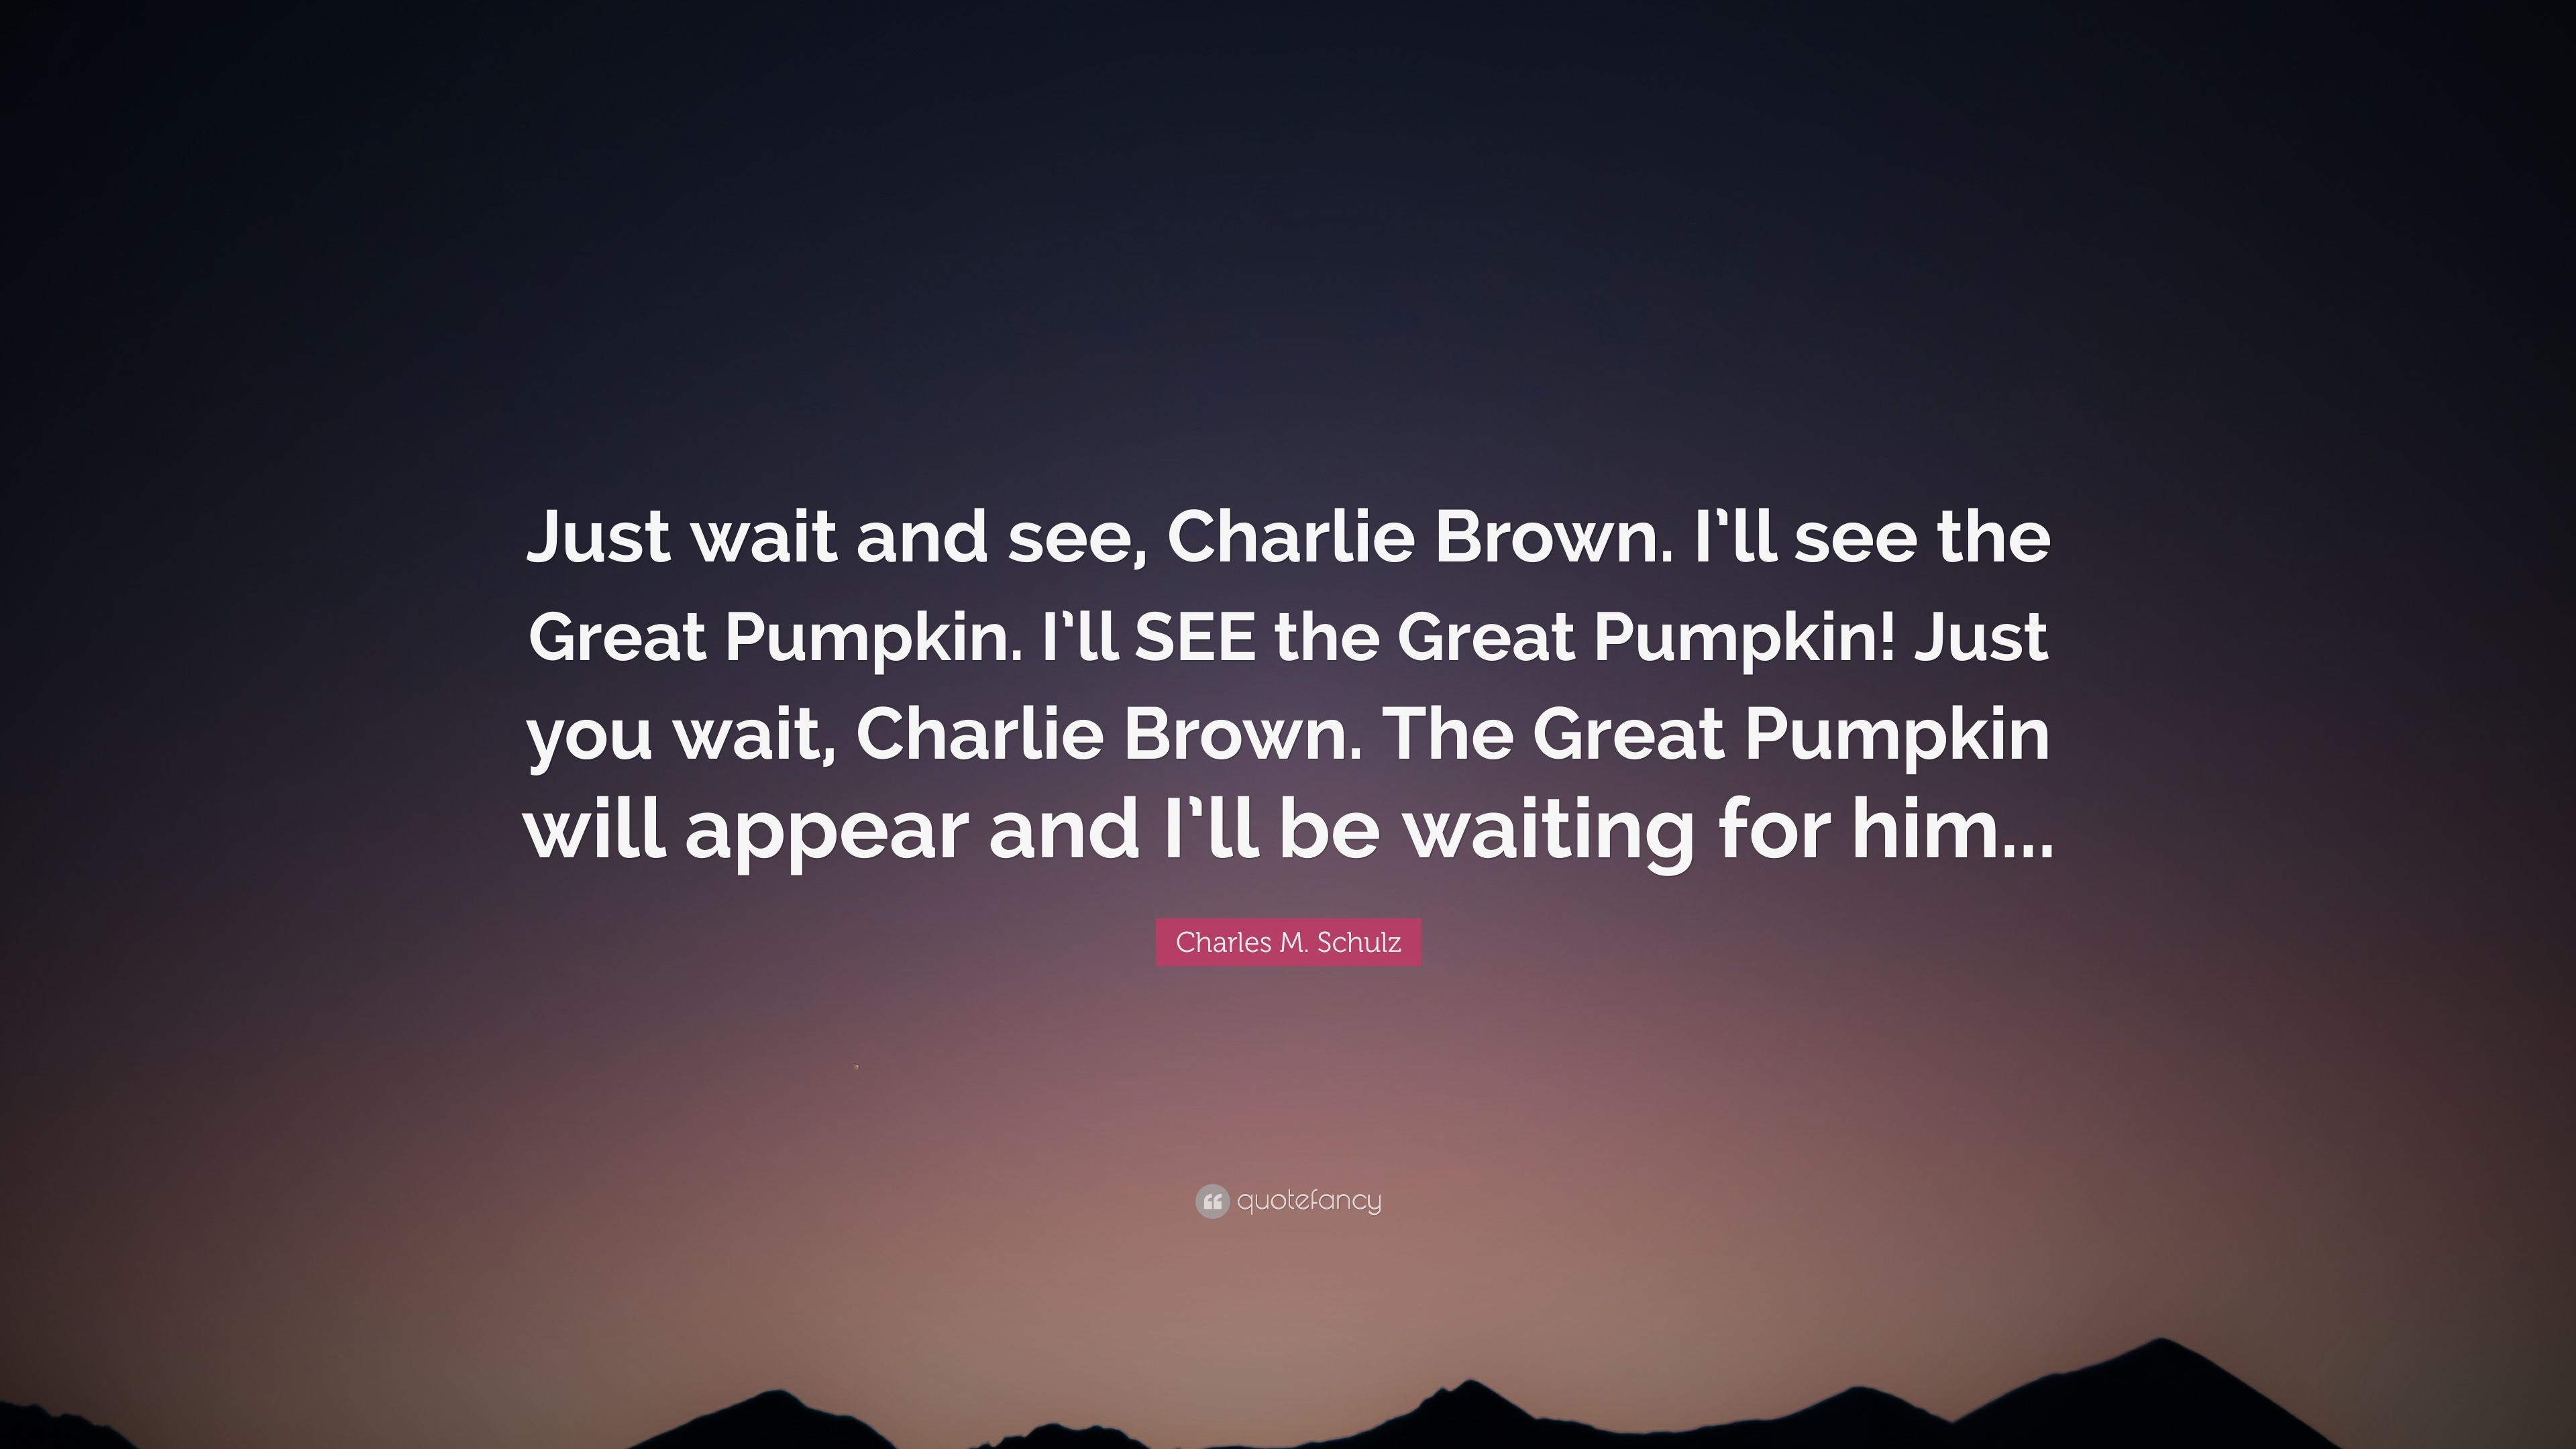 "Charles M. Schulz Quote: ""Just wait and see, Charlie Brown ..."